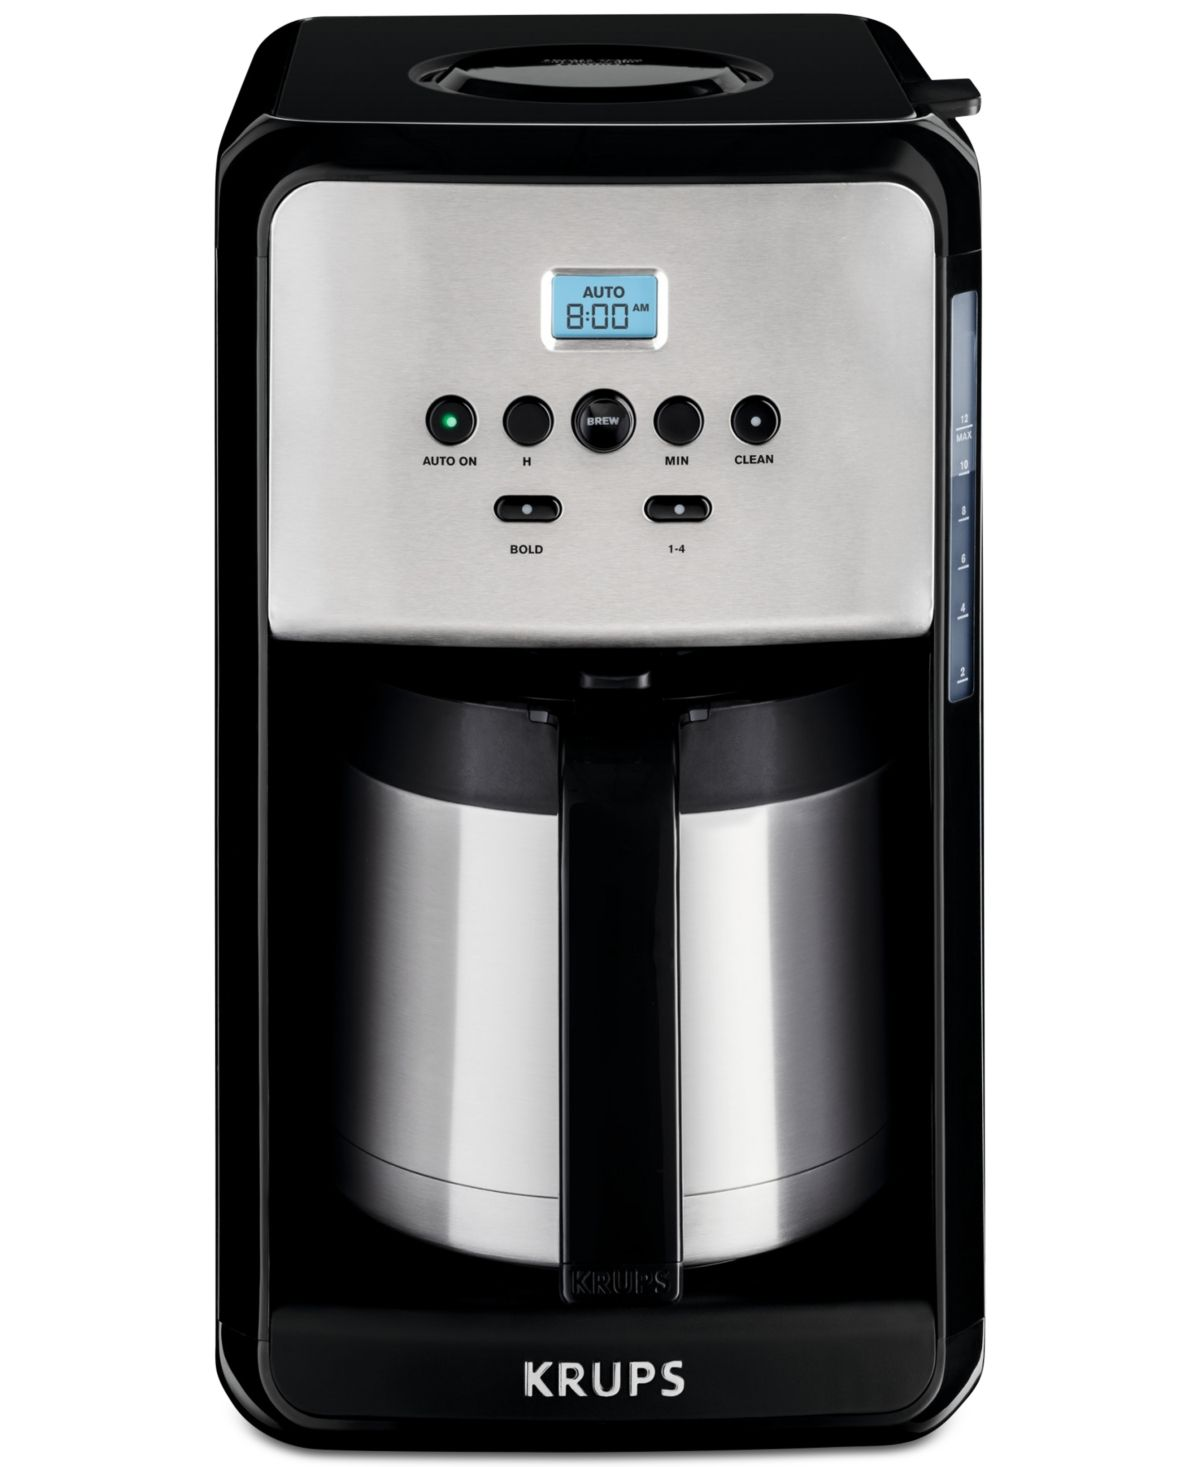 Krups Et351050 12 Cup Savoy Programmable Thermal Coffee Maker Reviews Coffee Makers Kitchen Macy S Thermal Coffee Maker Coffee Maker Machine Coffee Maker